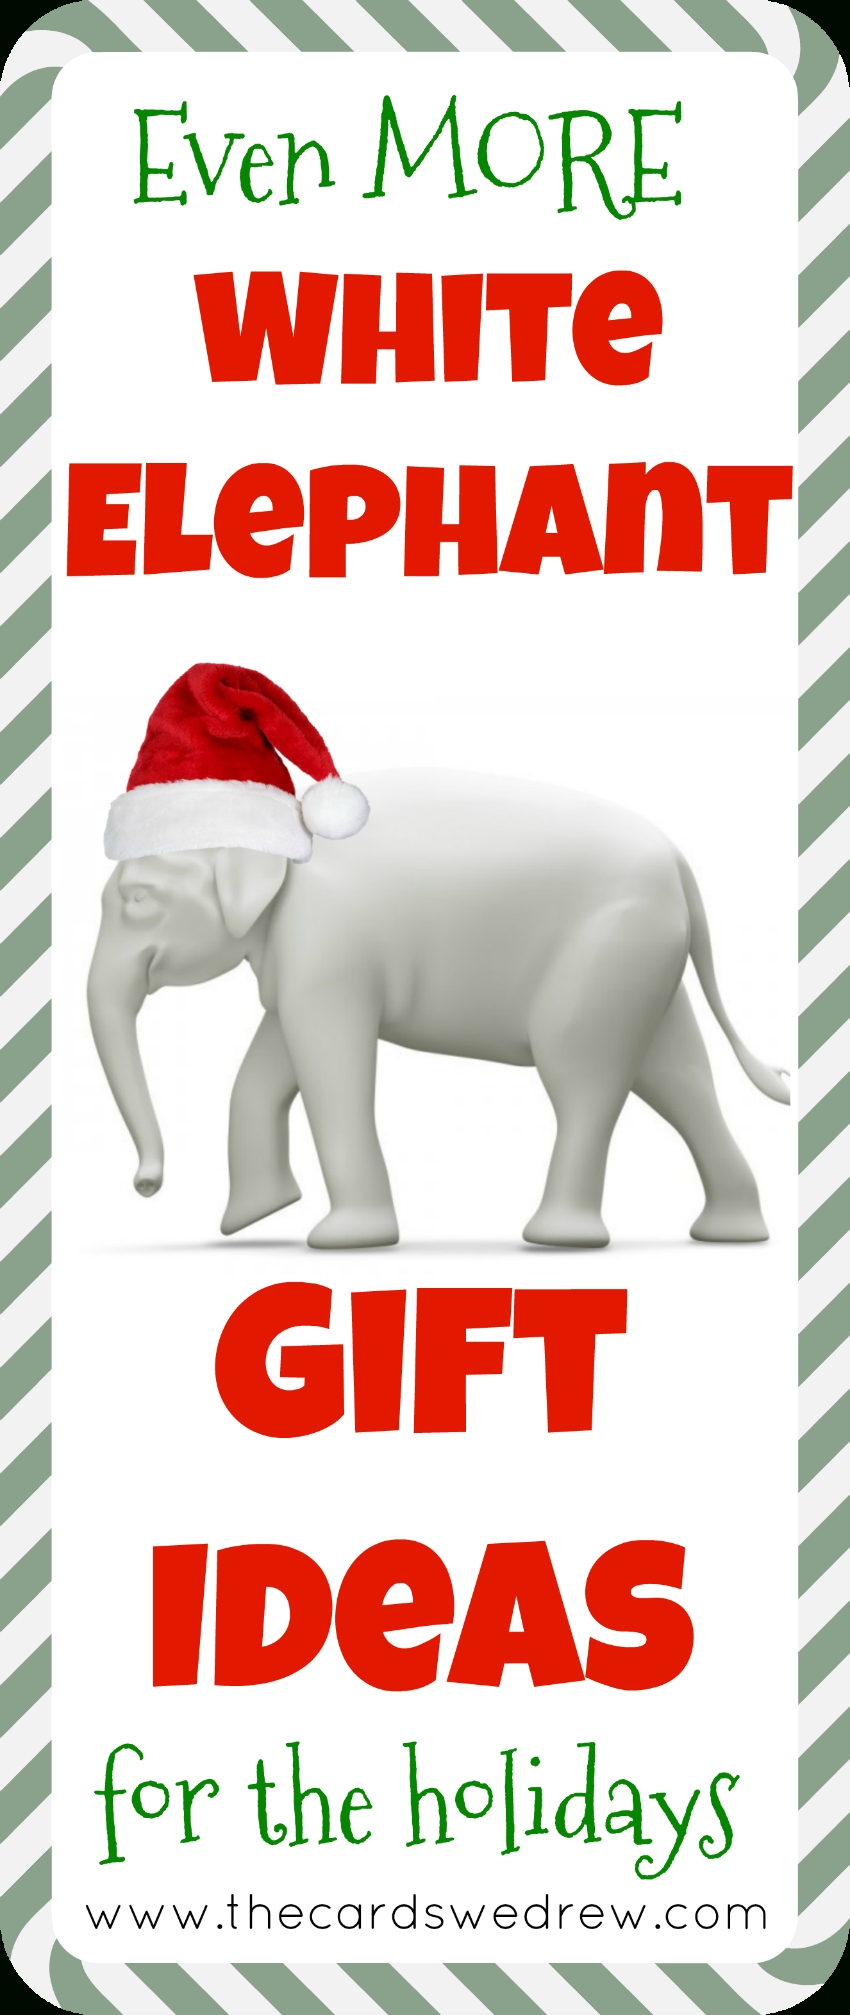 10 Perfect What Is A White Elephant Gift Ideas even more white elephant gift ideas the cards we drew 3 2020